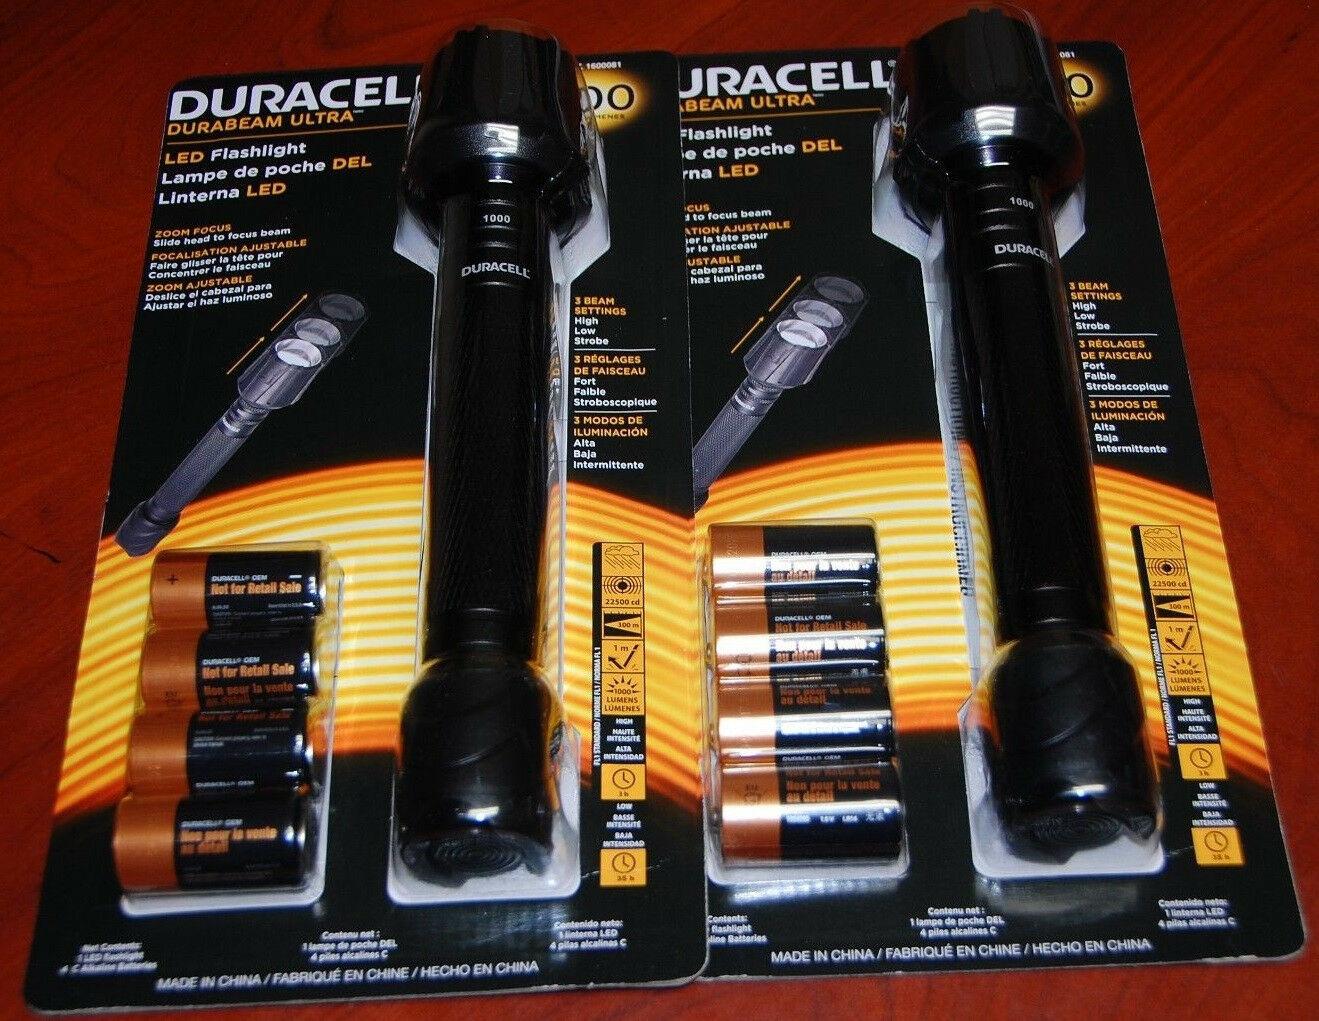 2 Duracell Durabeam Ultra LED Flashlight 1000 Lumen(2 of  tham) extra saving  looking for sales agent